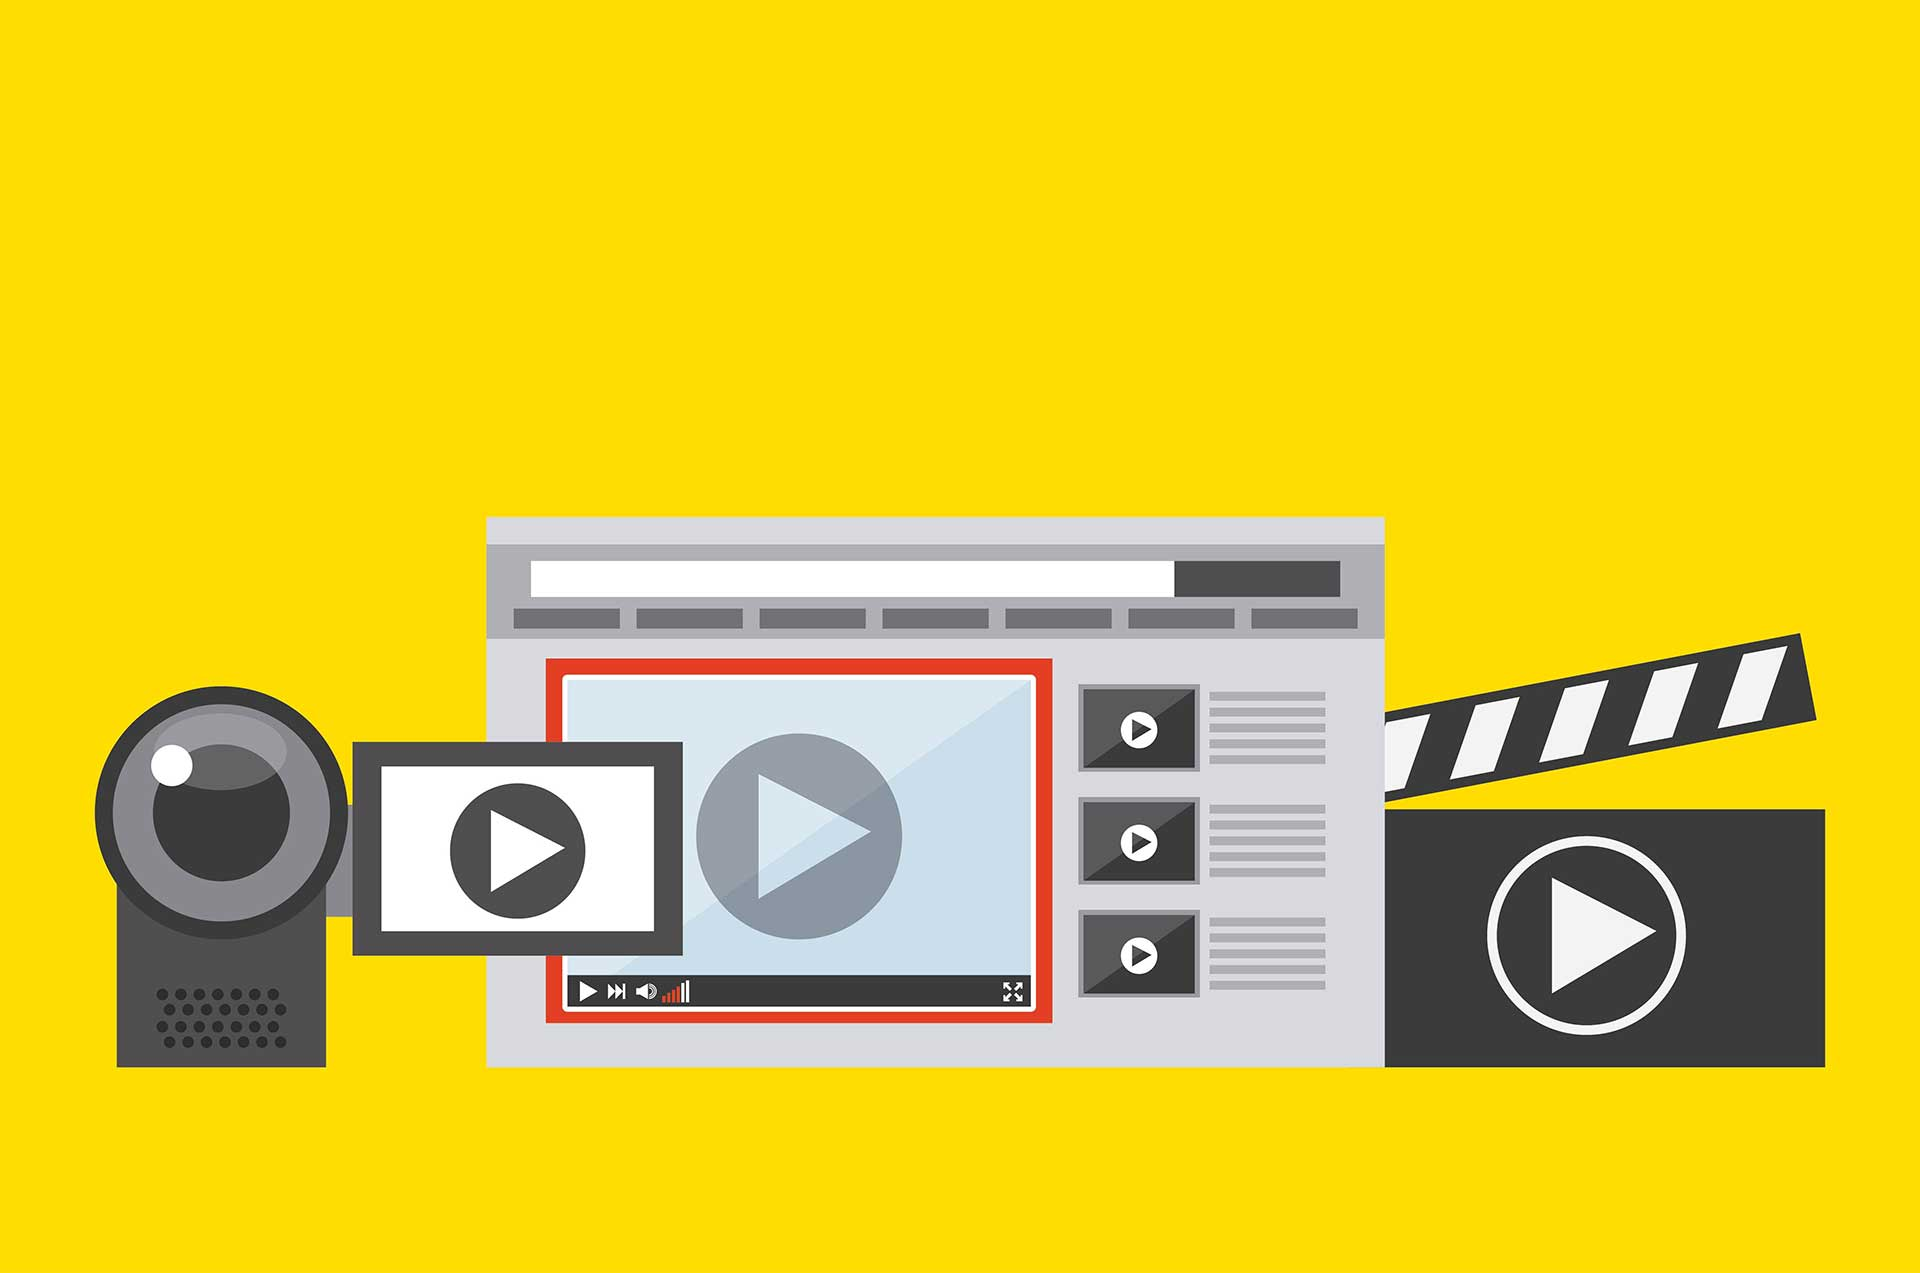 Wistia vs YouTube vs Vimeo: What platform is best for my company? [Interview]